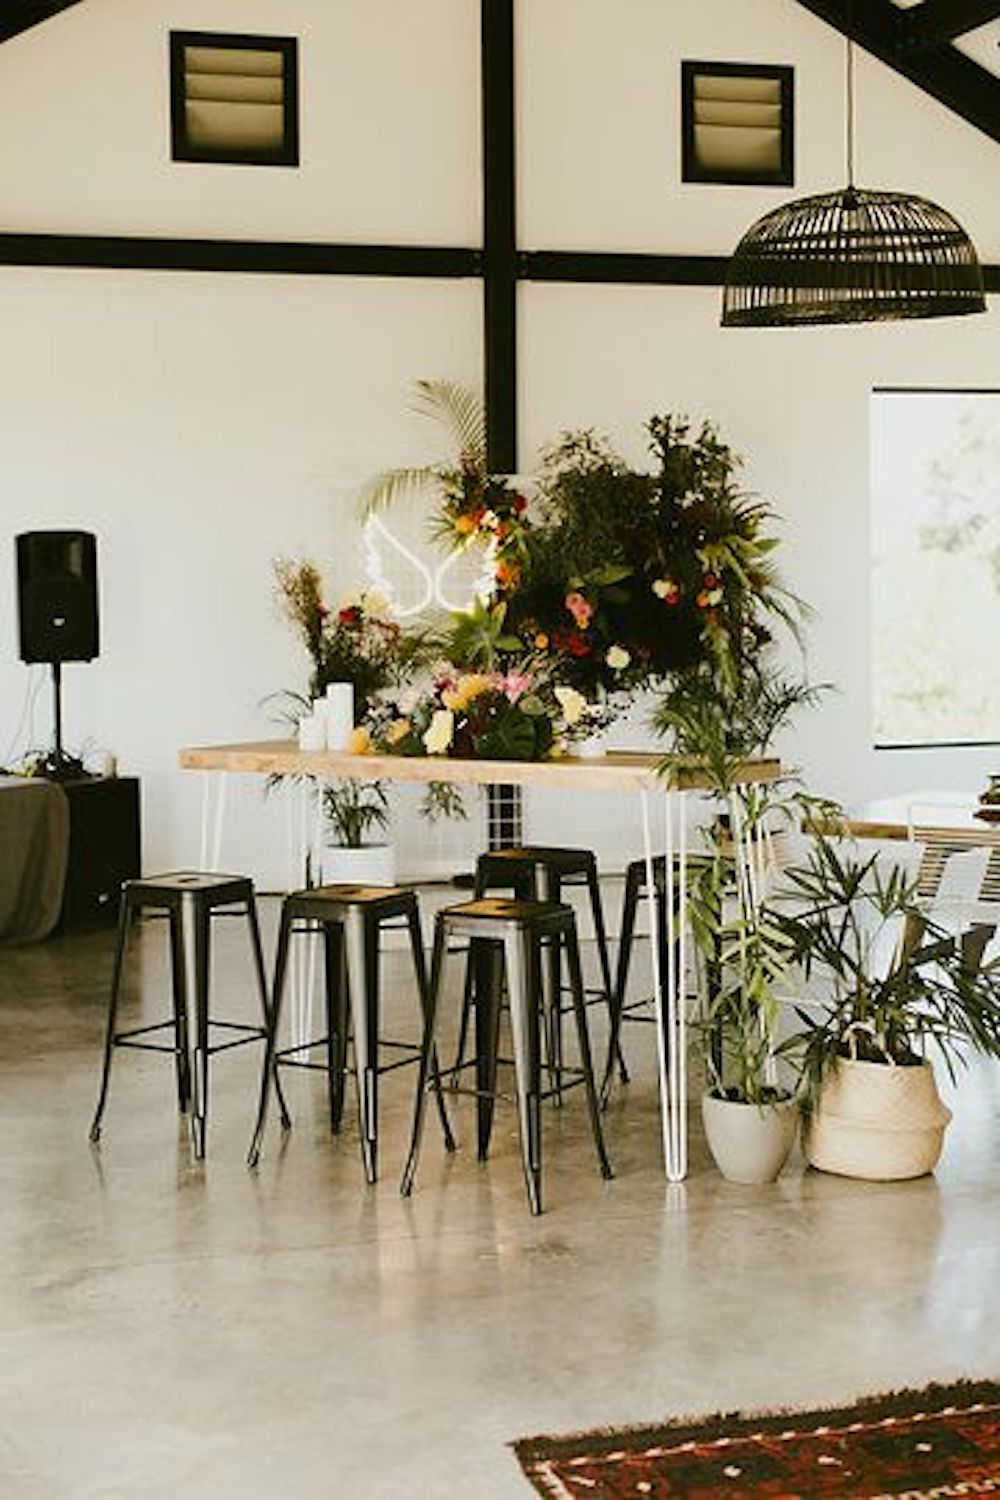 Using texture wedding styling ideas and inspiration5.jpg